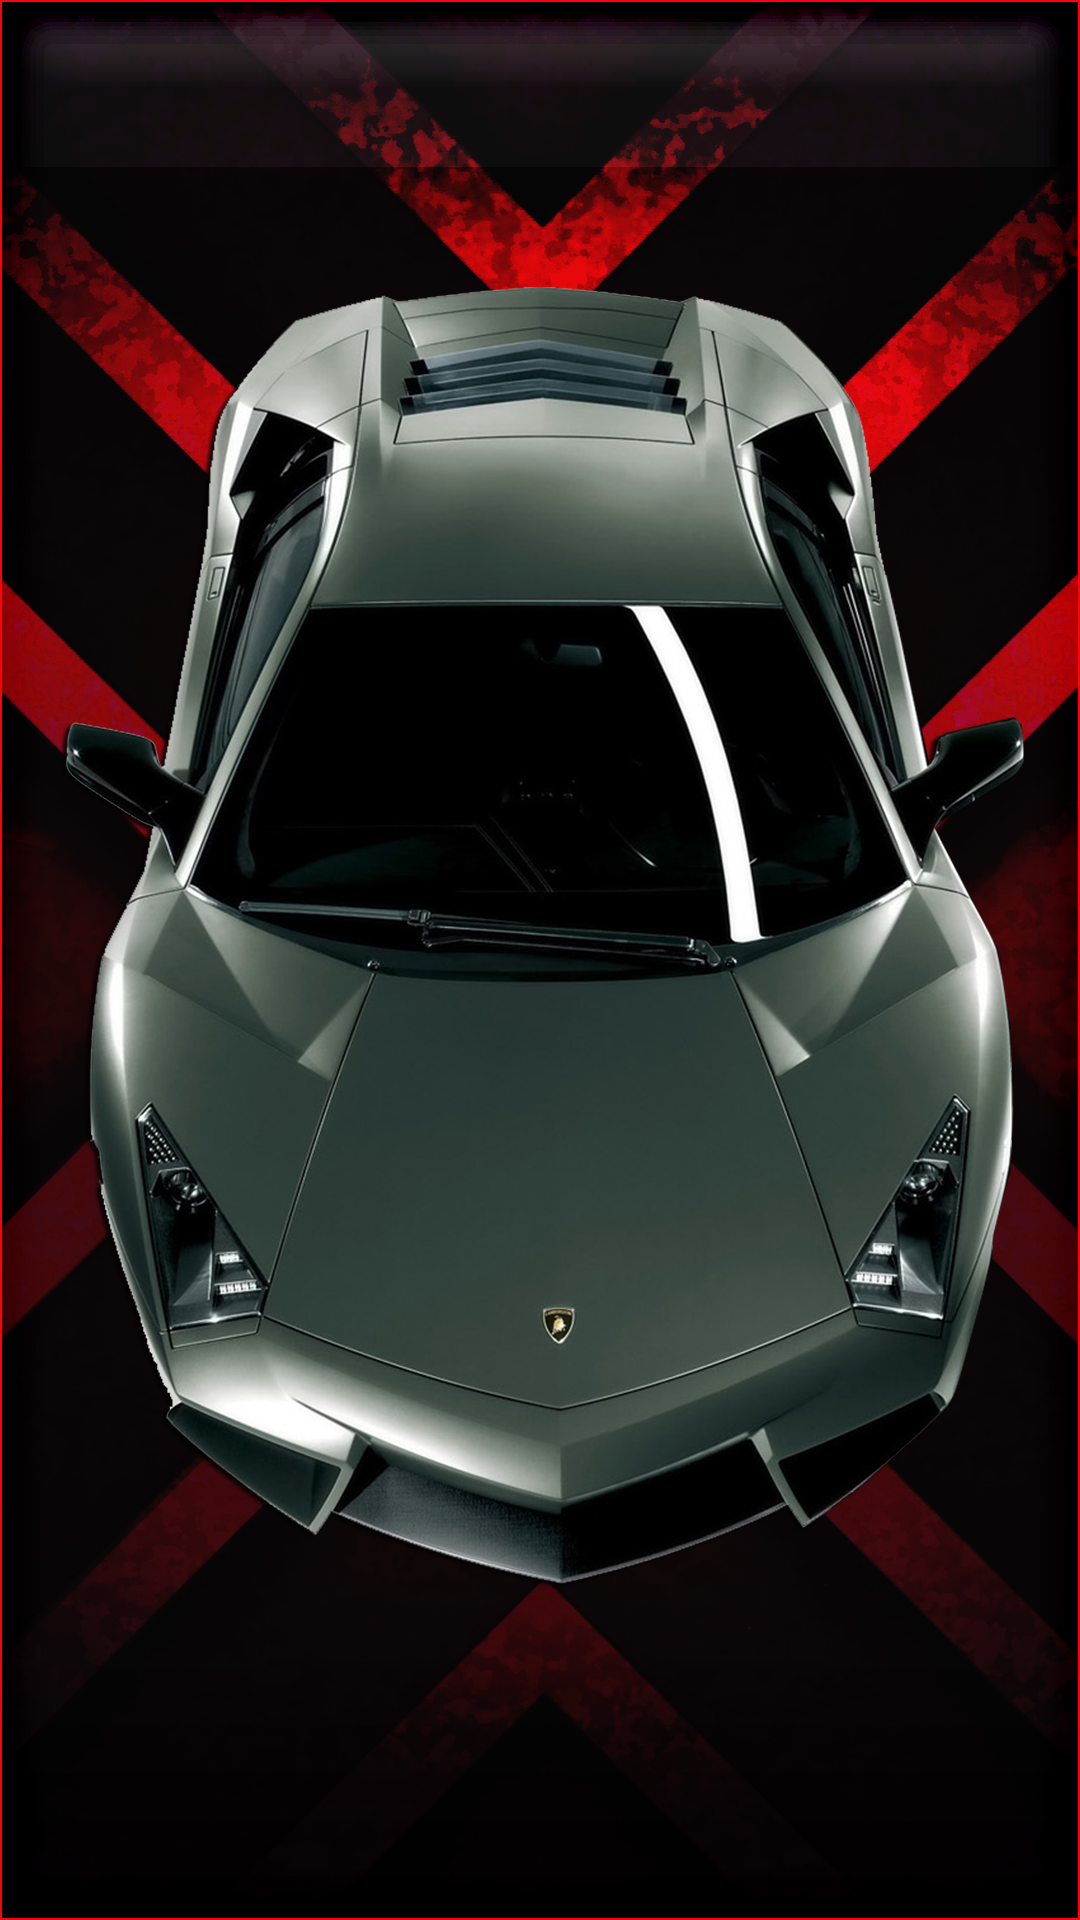 Lamborghini Car 1080 X 1920 FHD Wallpaper